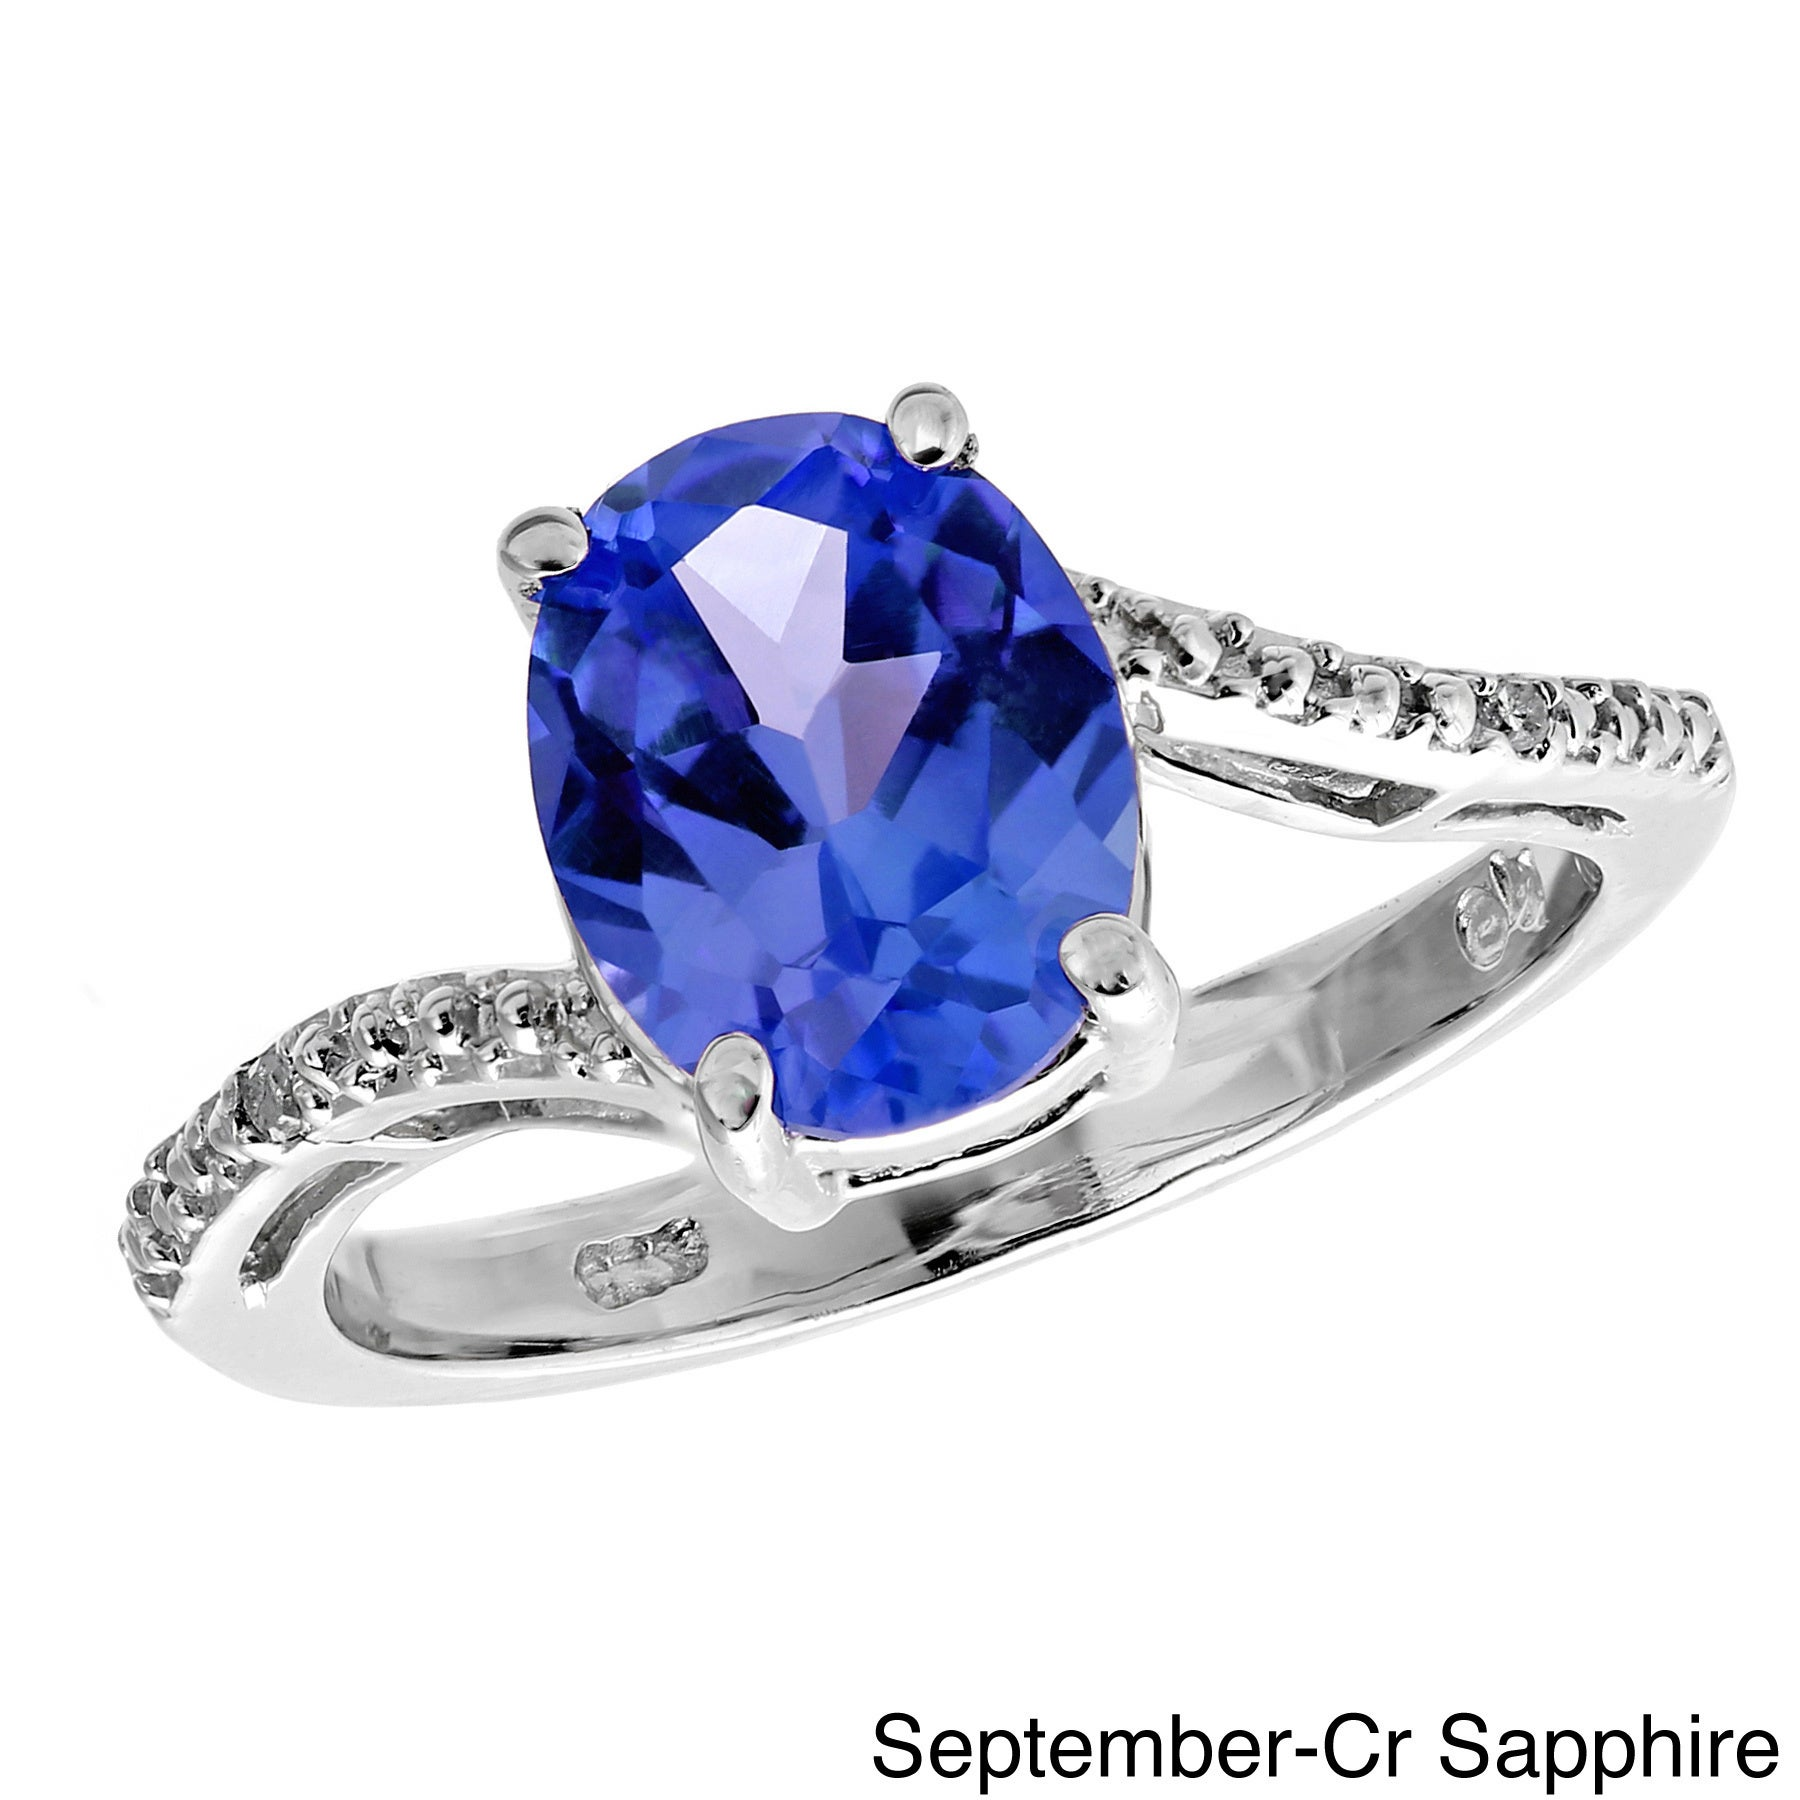 halo ring blog jewellers sapphire september inc blue sampat birthstone